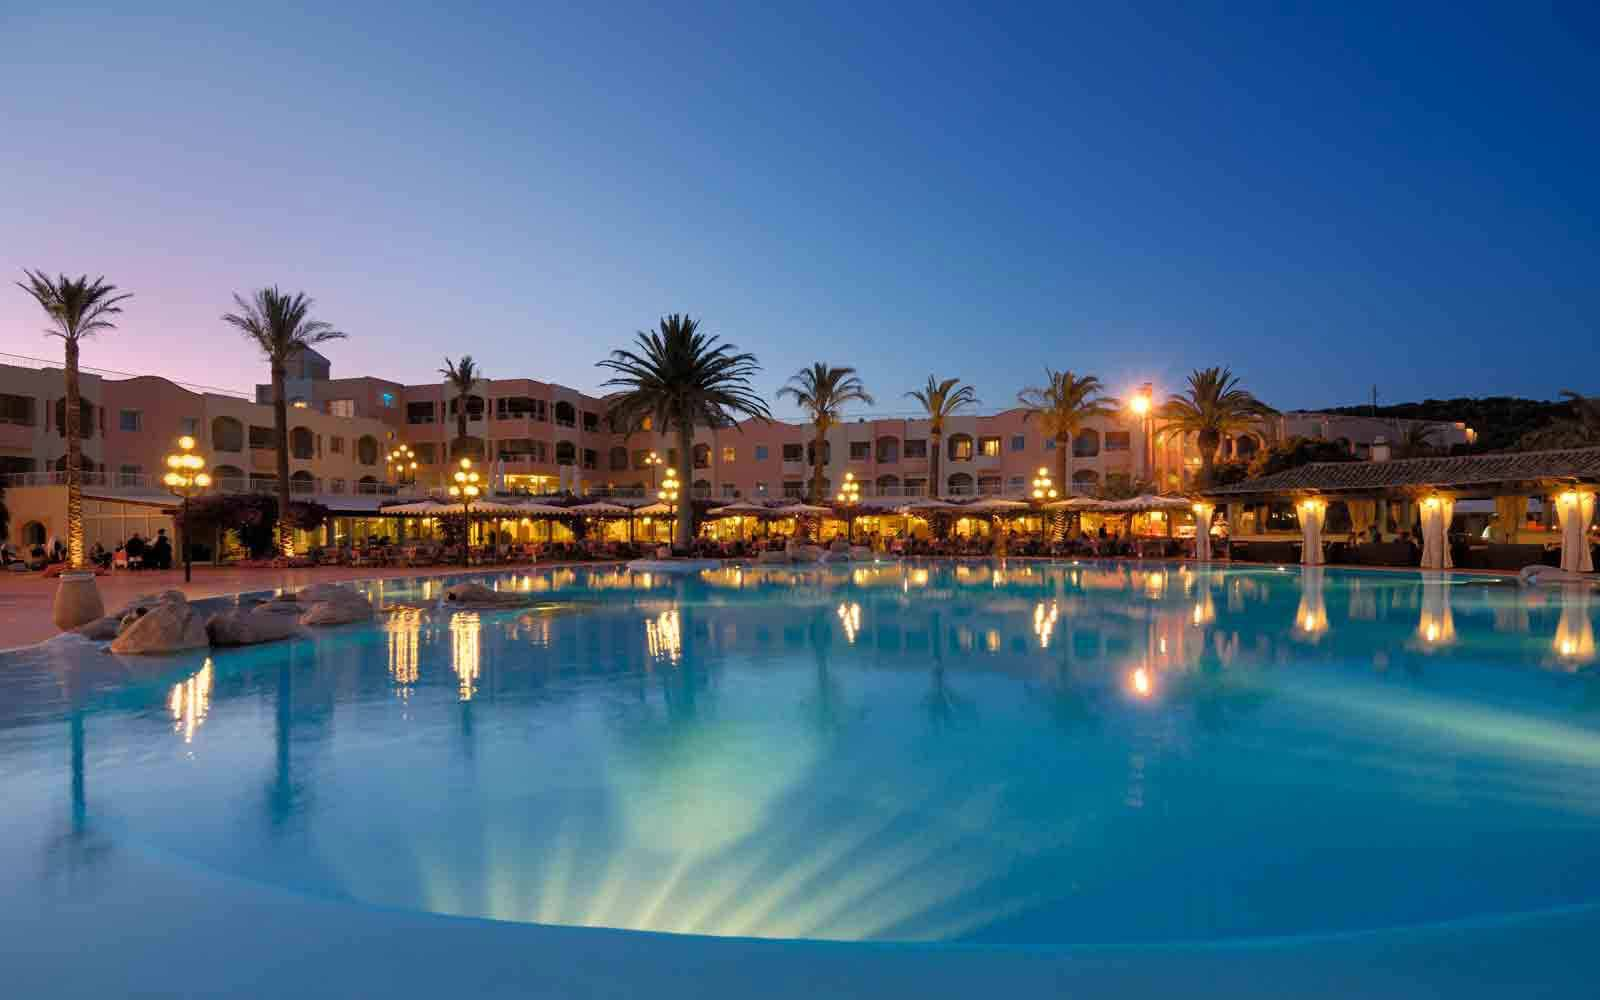 Night view of pool at Pullman Timi Ama Sardegna